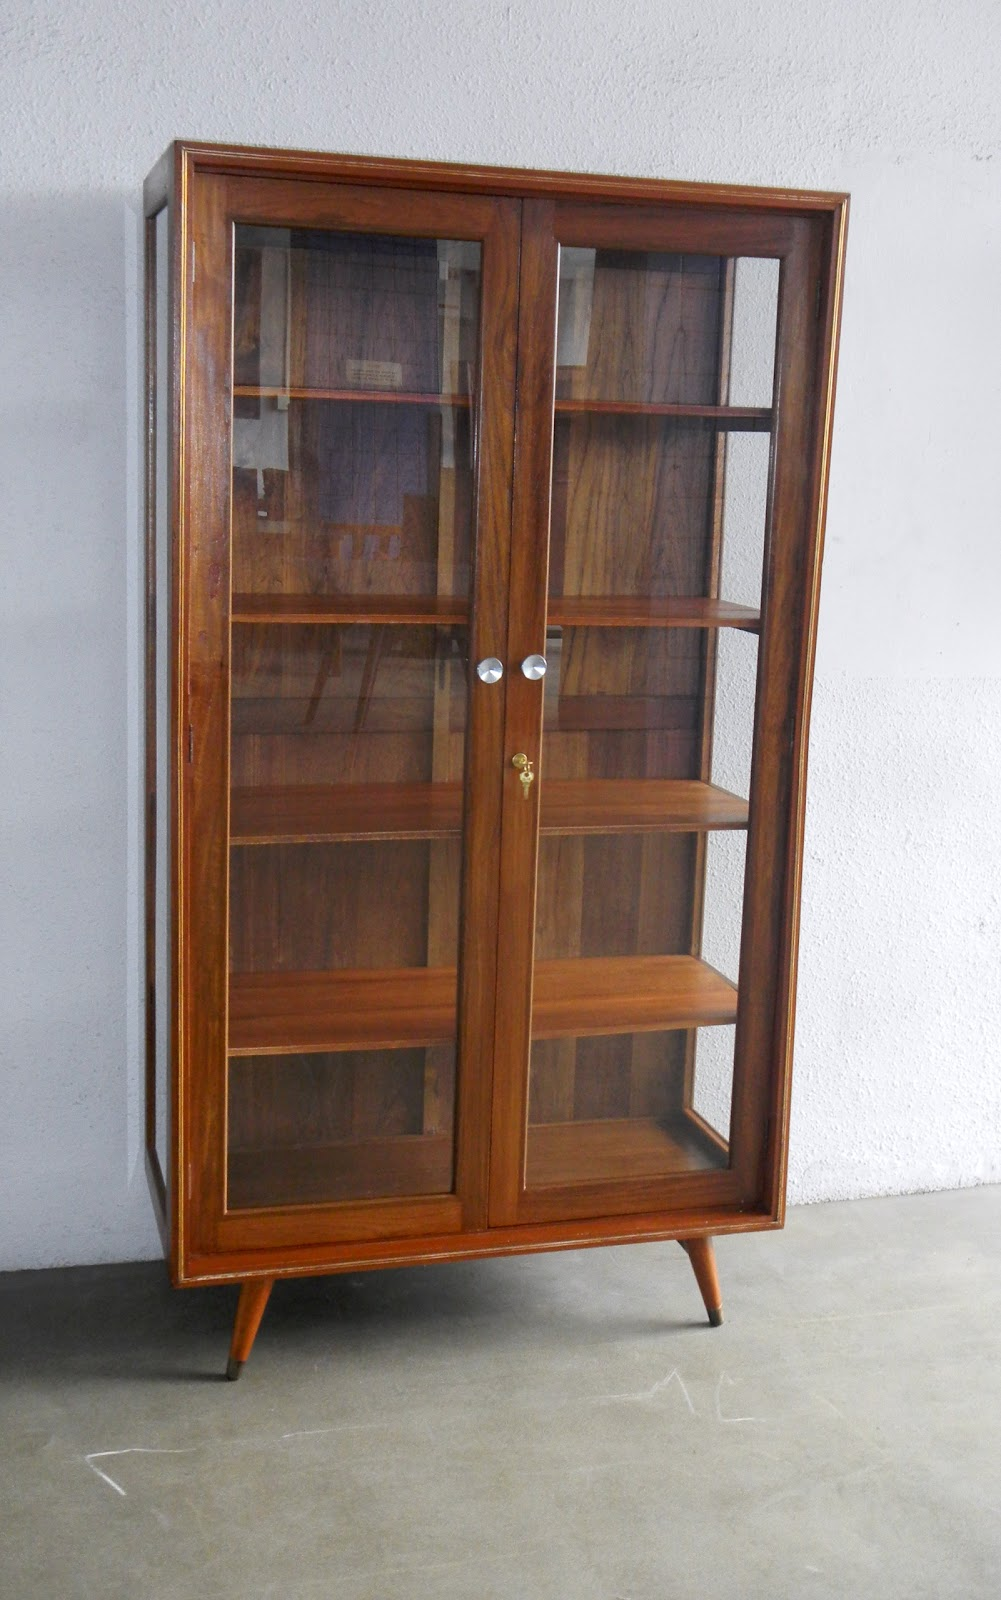 b1b5ecfaba0c Vintage 1960 s teak glass book cabinet. Angled at the top